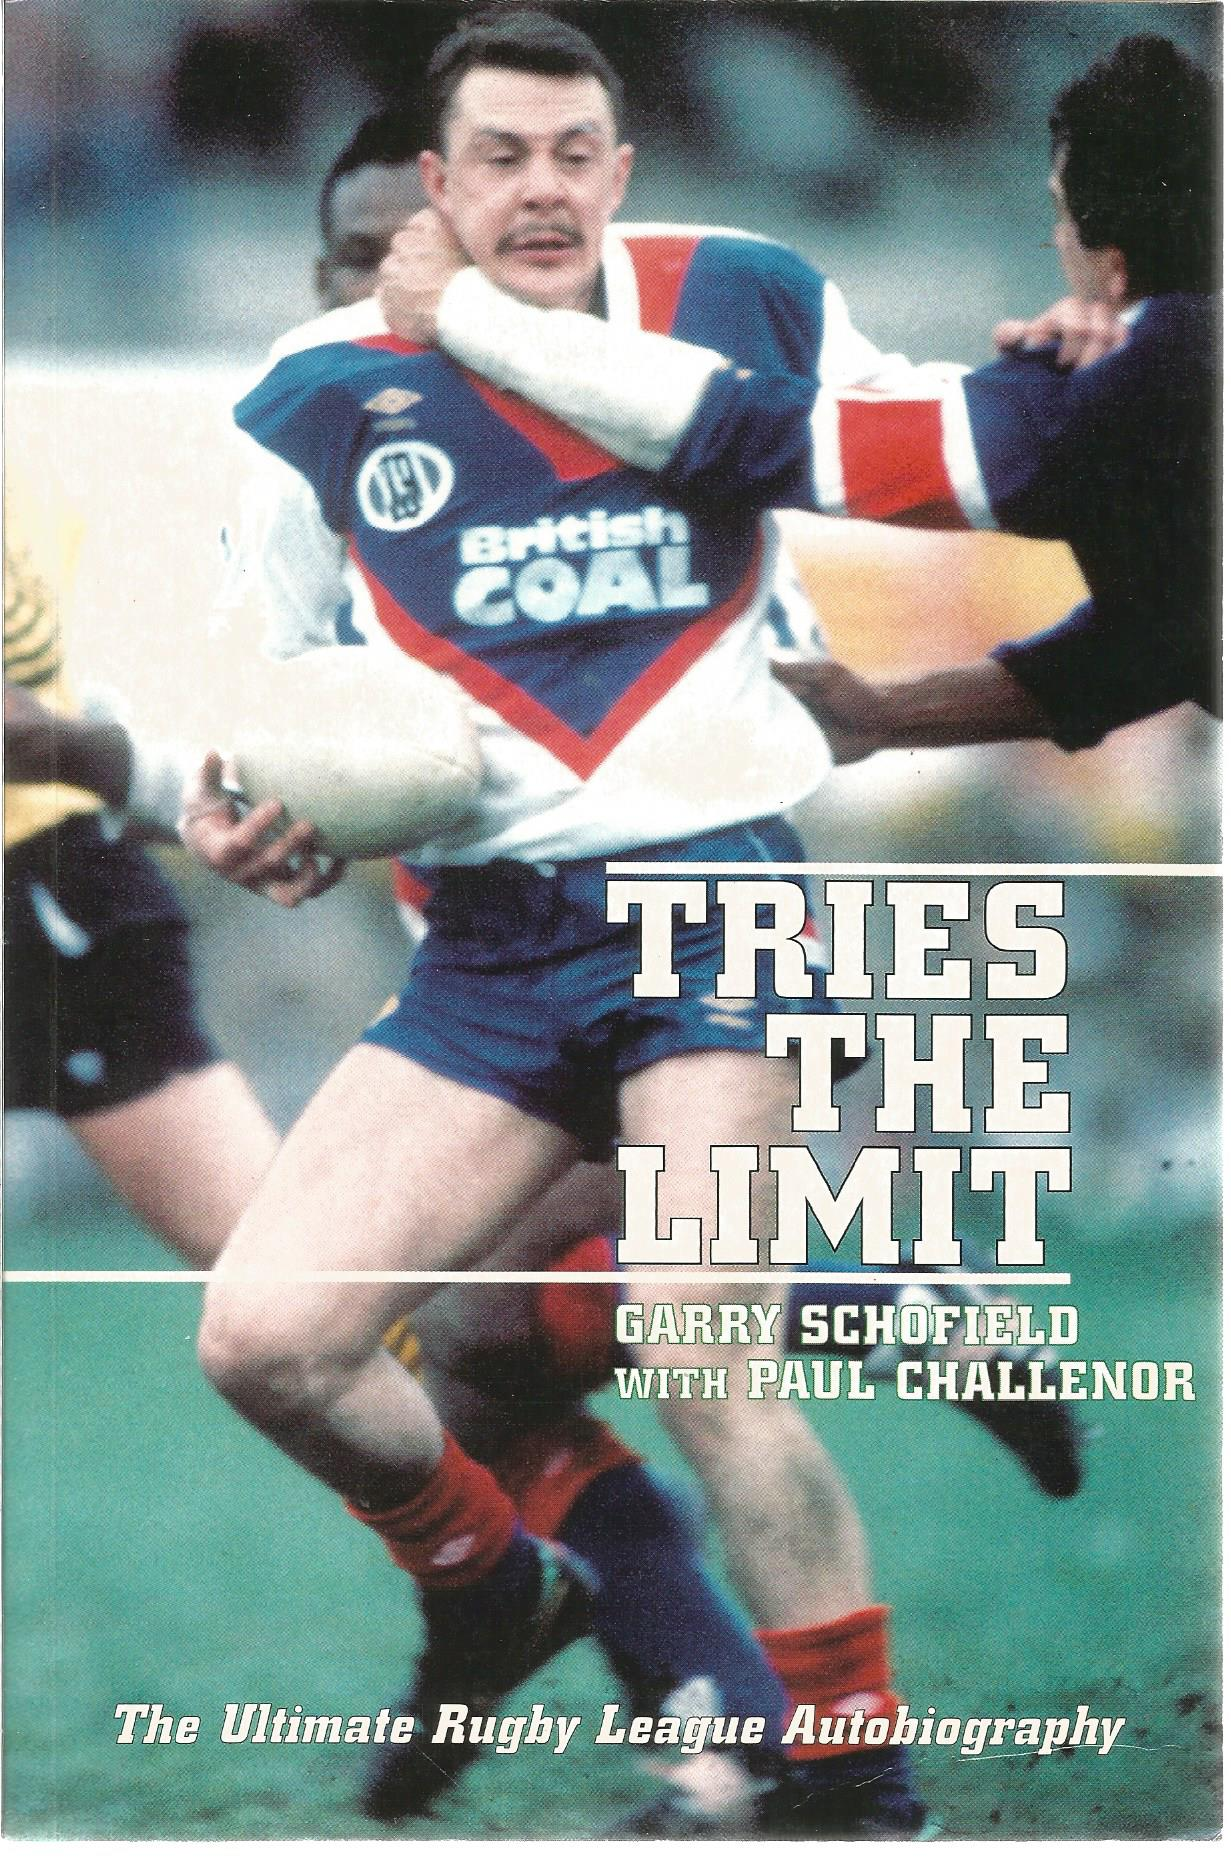 Lot 738 - Rugby League softback book titled Tries the Limit signed inside by Great Britain legend Garry